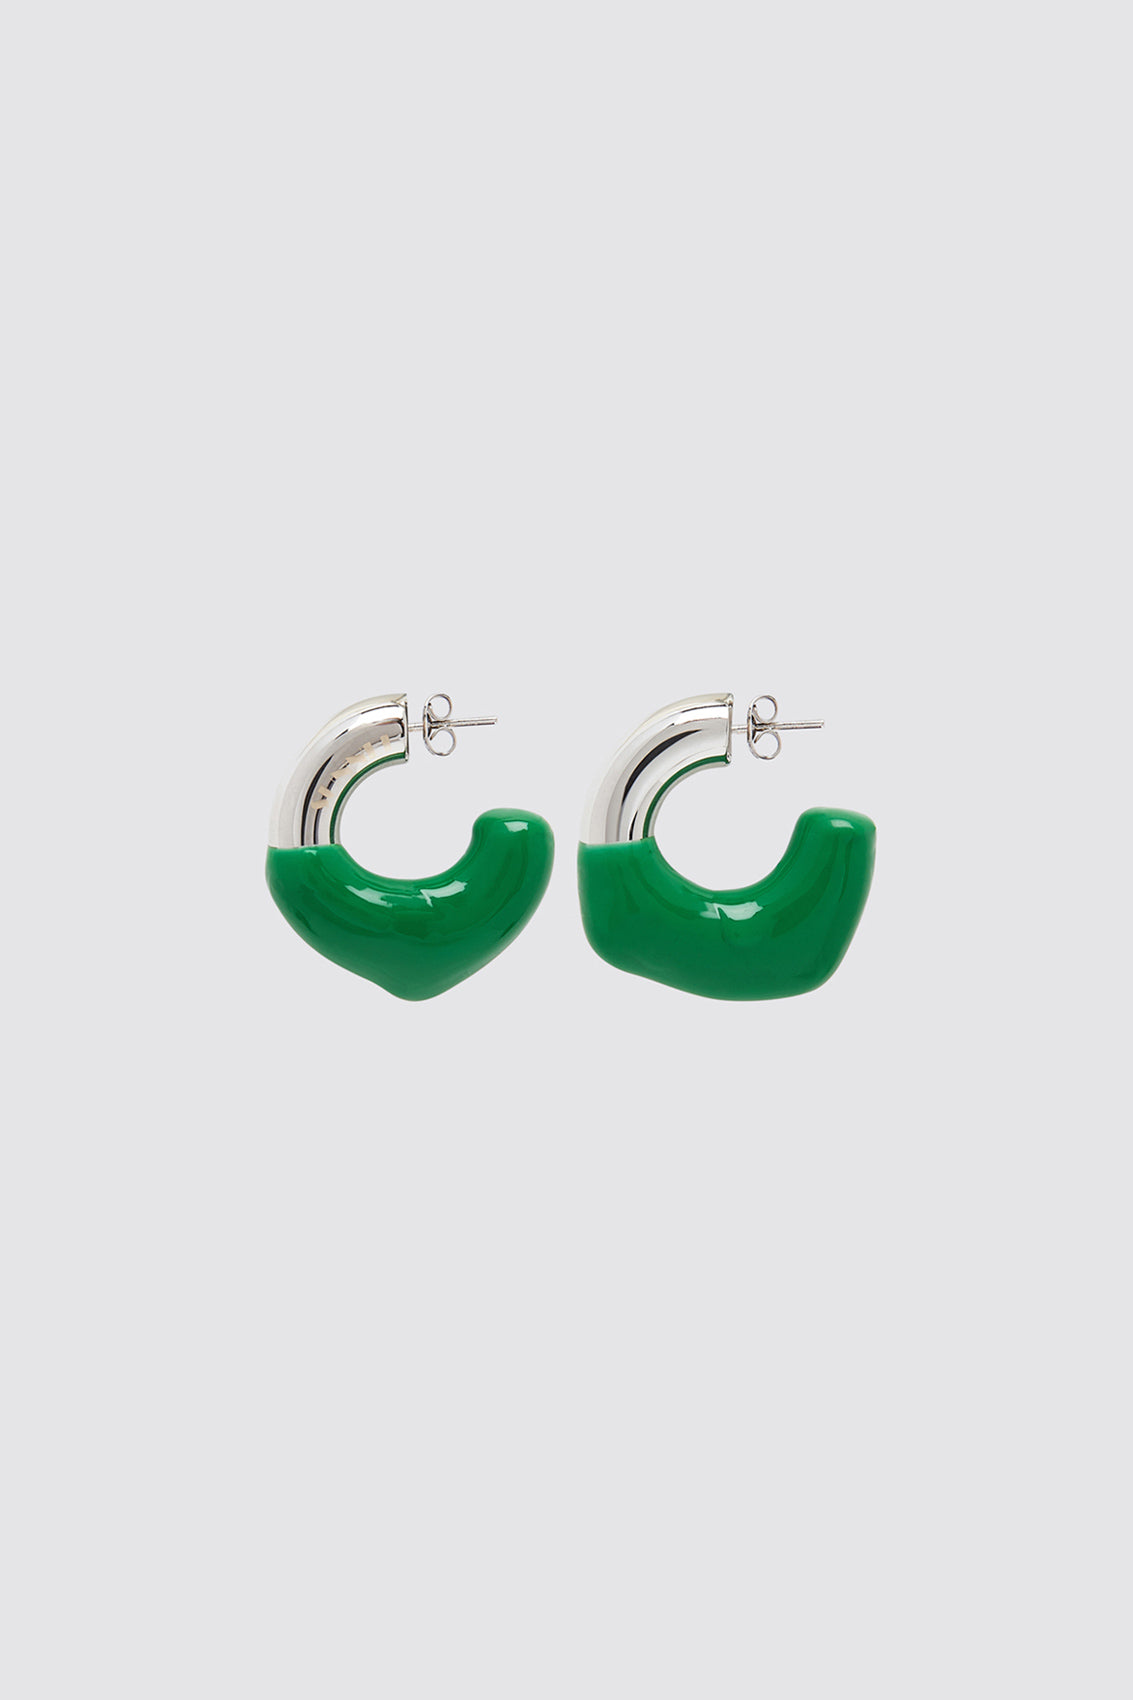 DARK GREEN RUBBERIZED SMALL SILVER EARRINGS